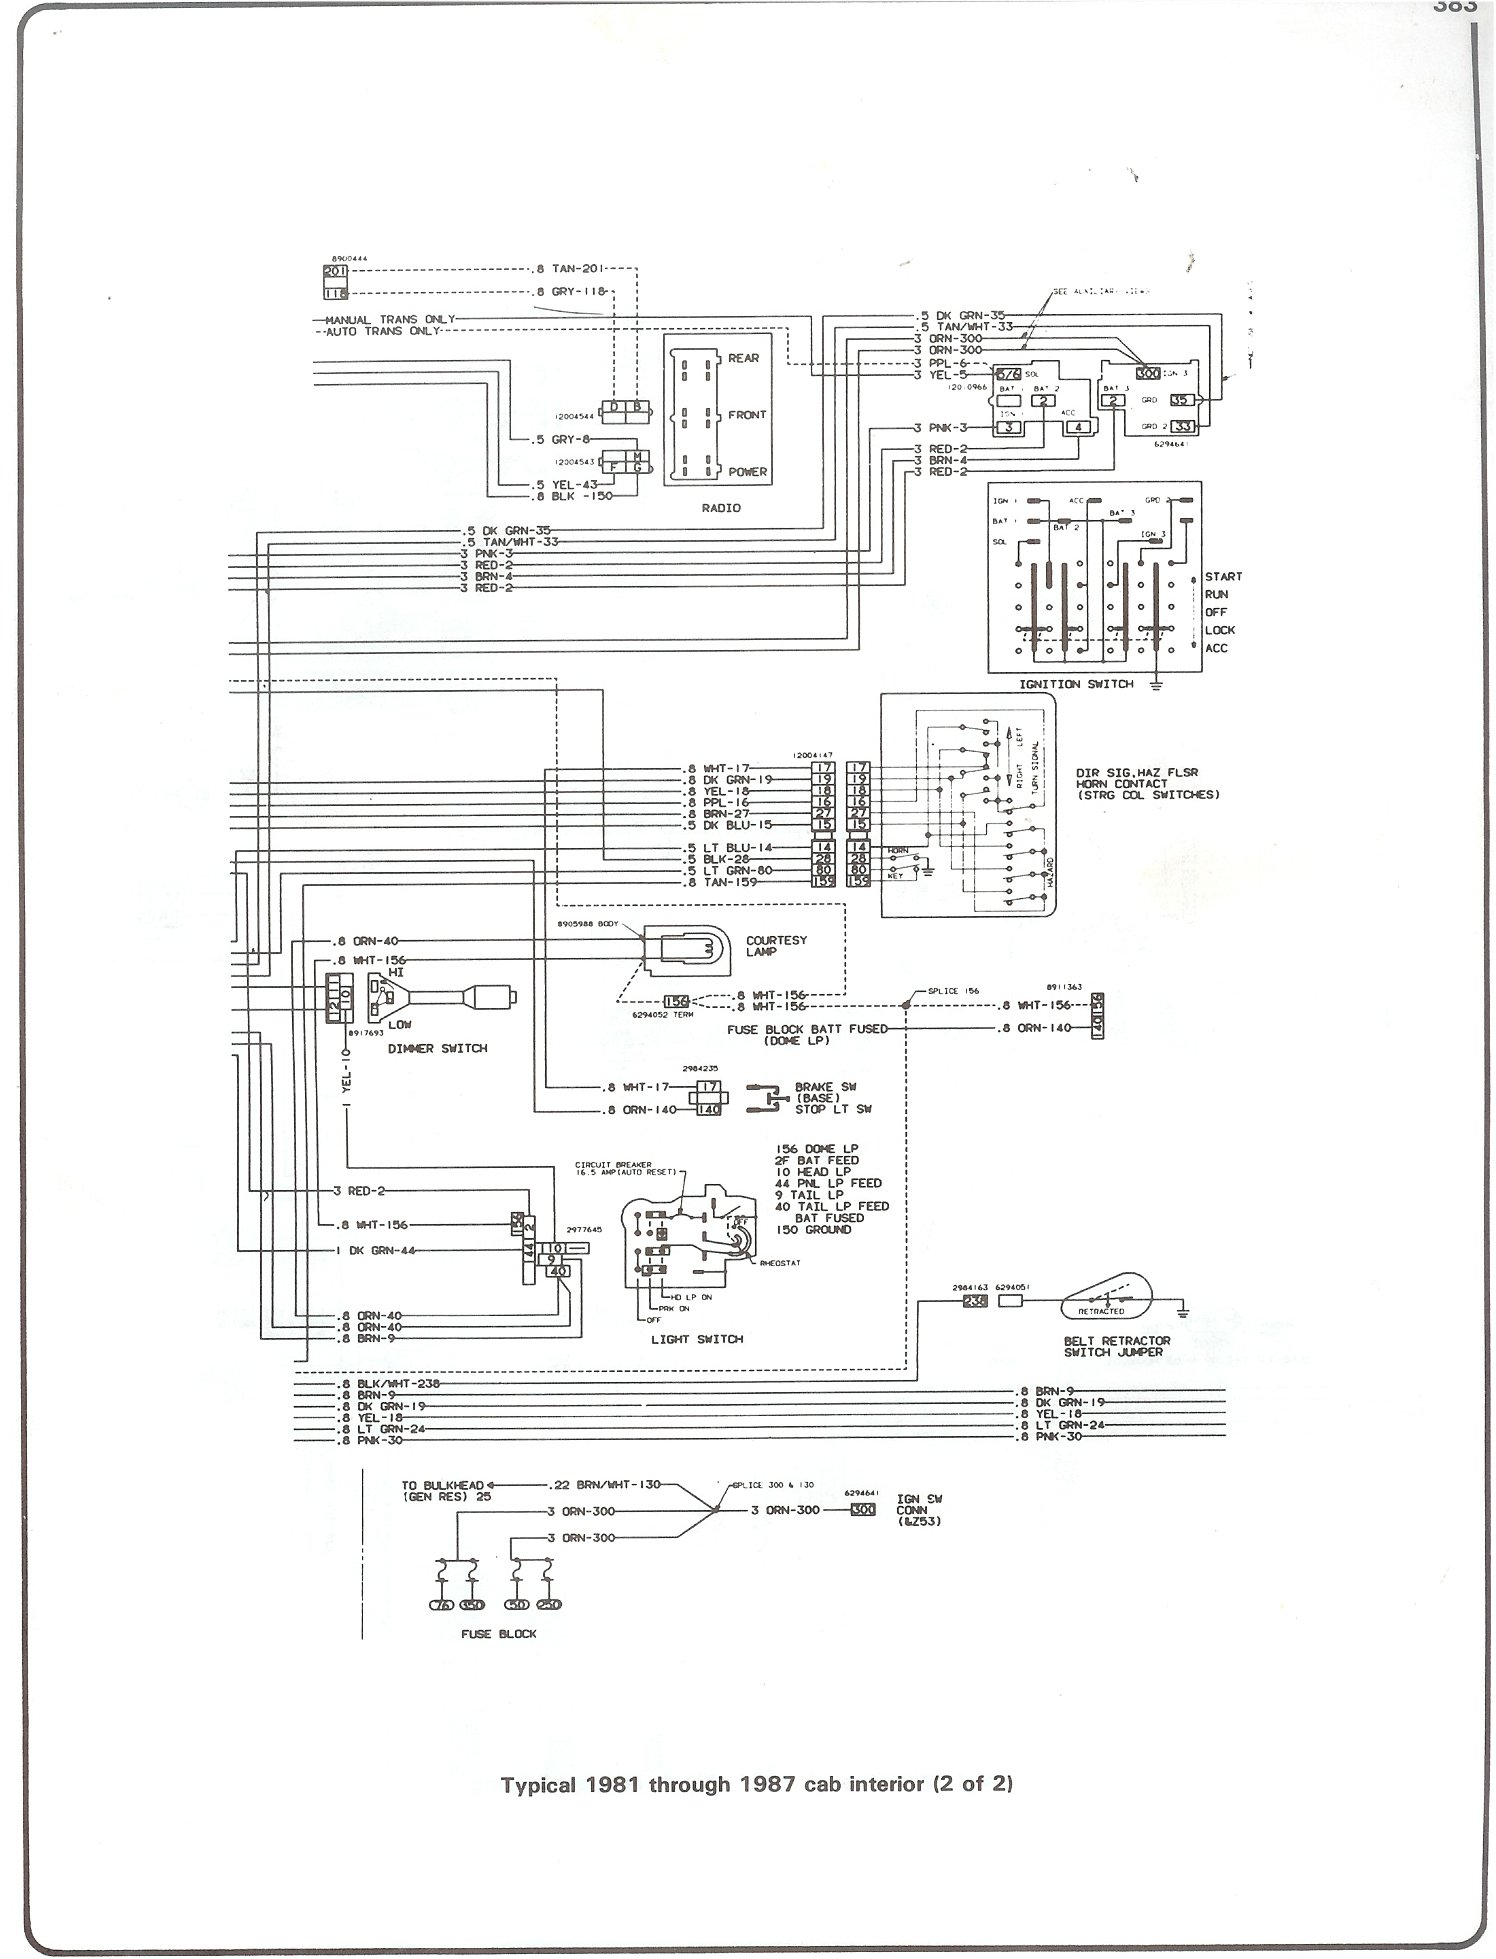 81 87_cab_inter_pg2 electrical diagrams chevy only page 2 truck forum 1970 Chevy C10 Fuse Box Diagram at gsmx.co